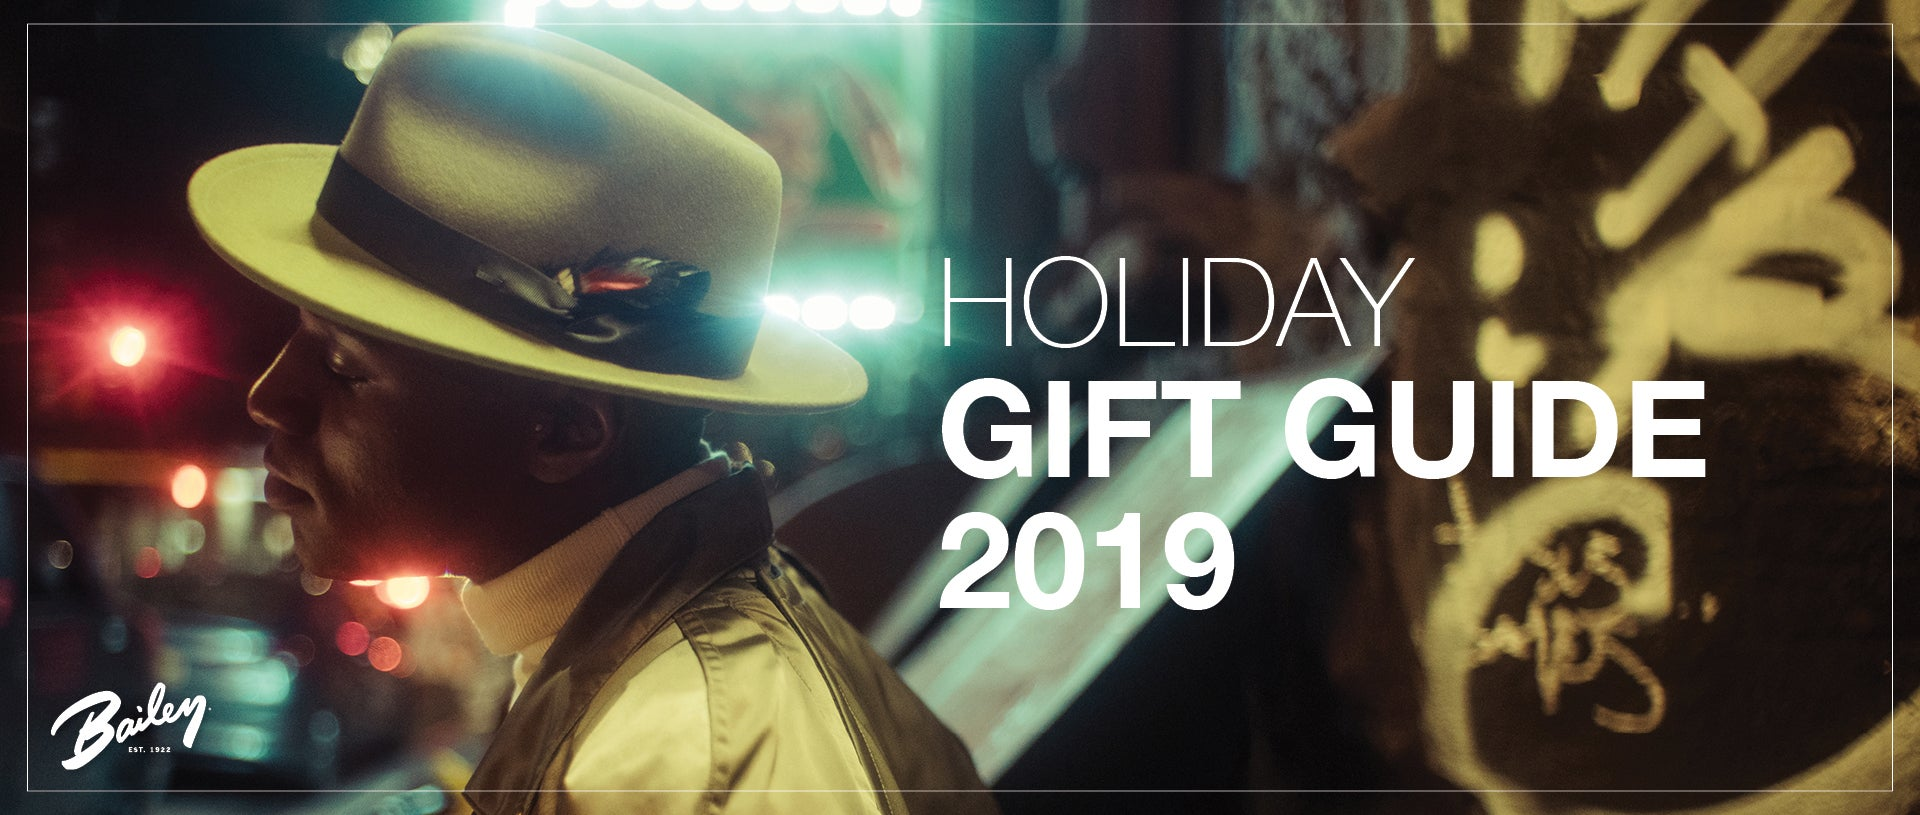 BaileyHats.com's Holiday Gift Guide